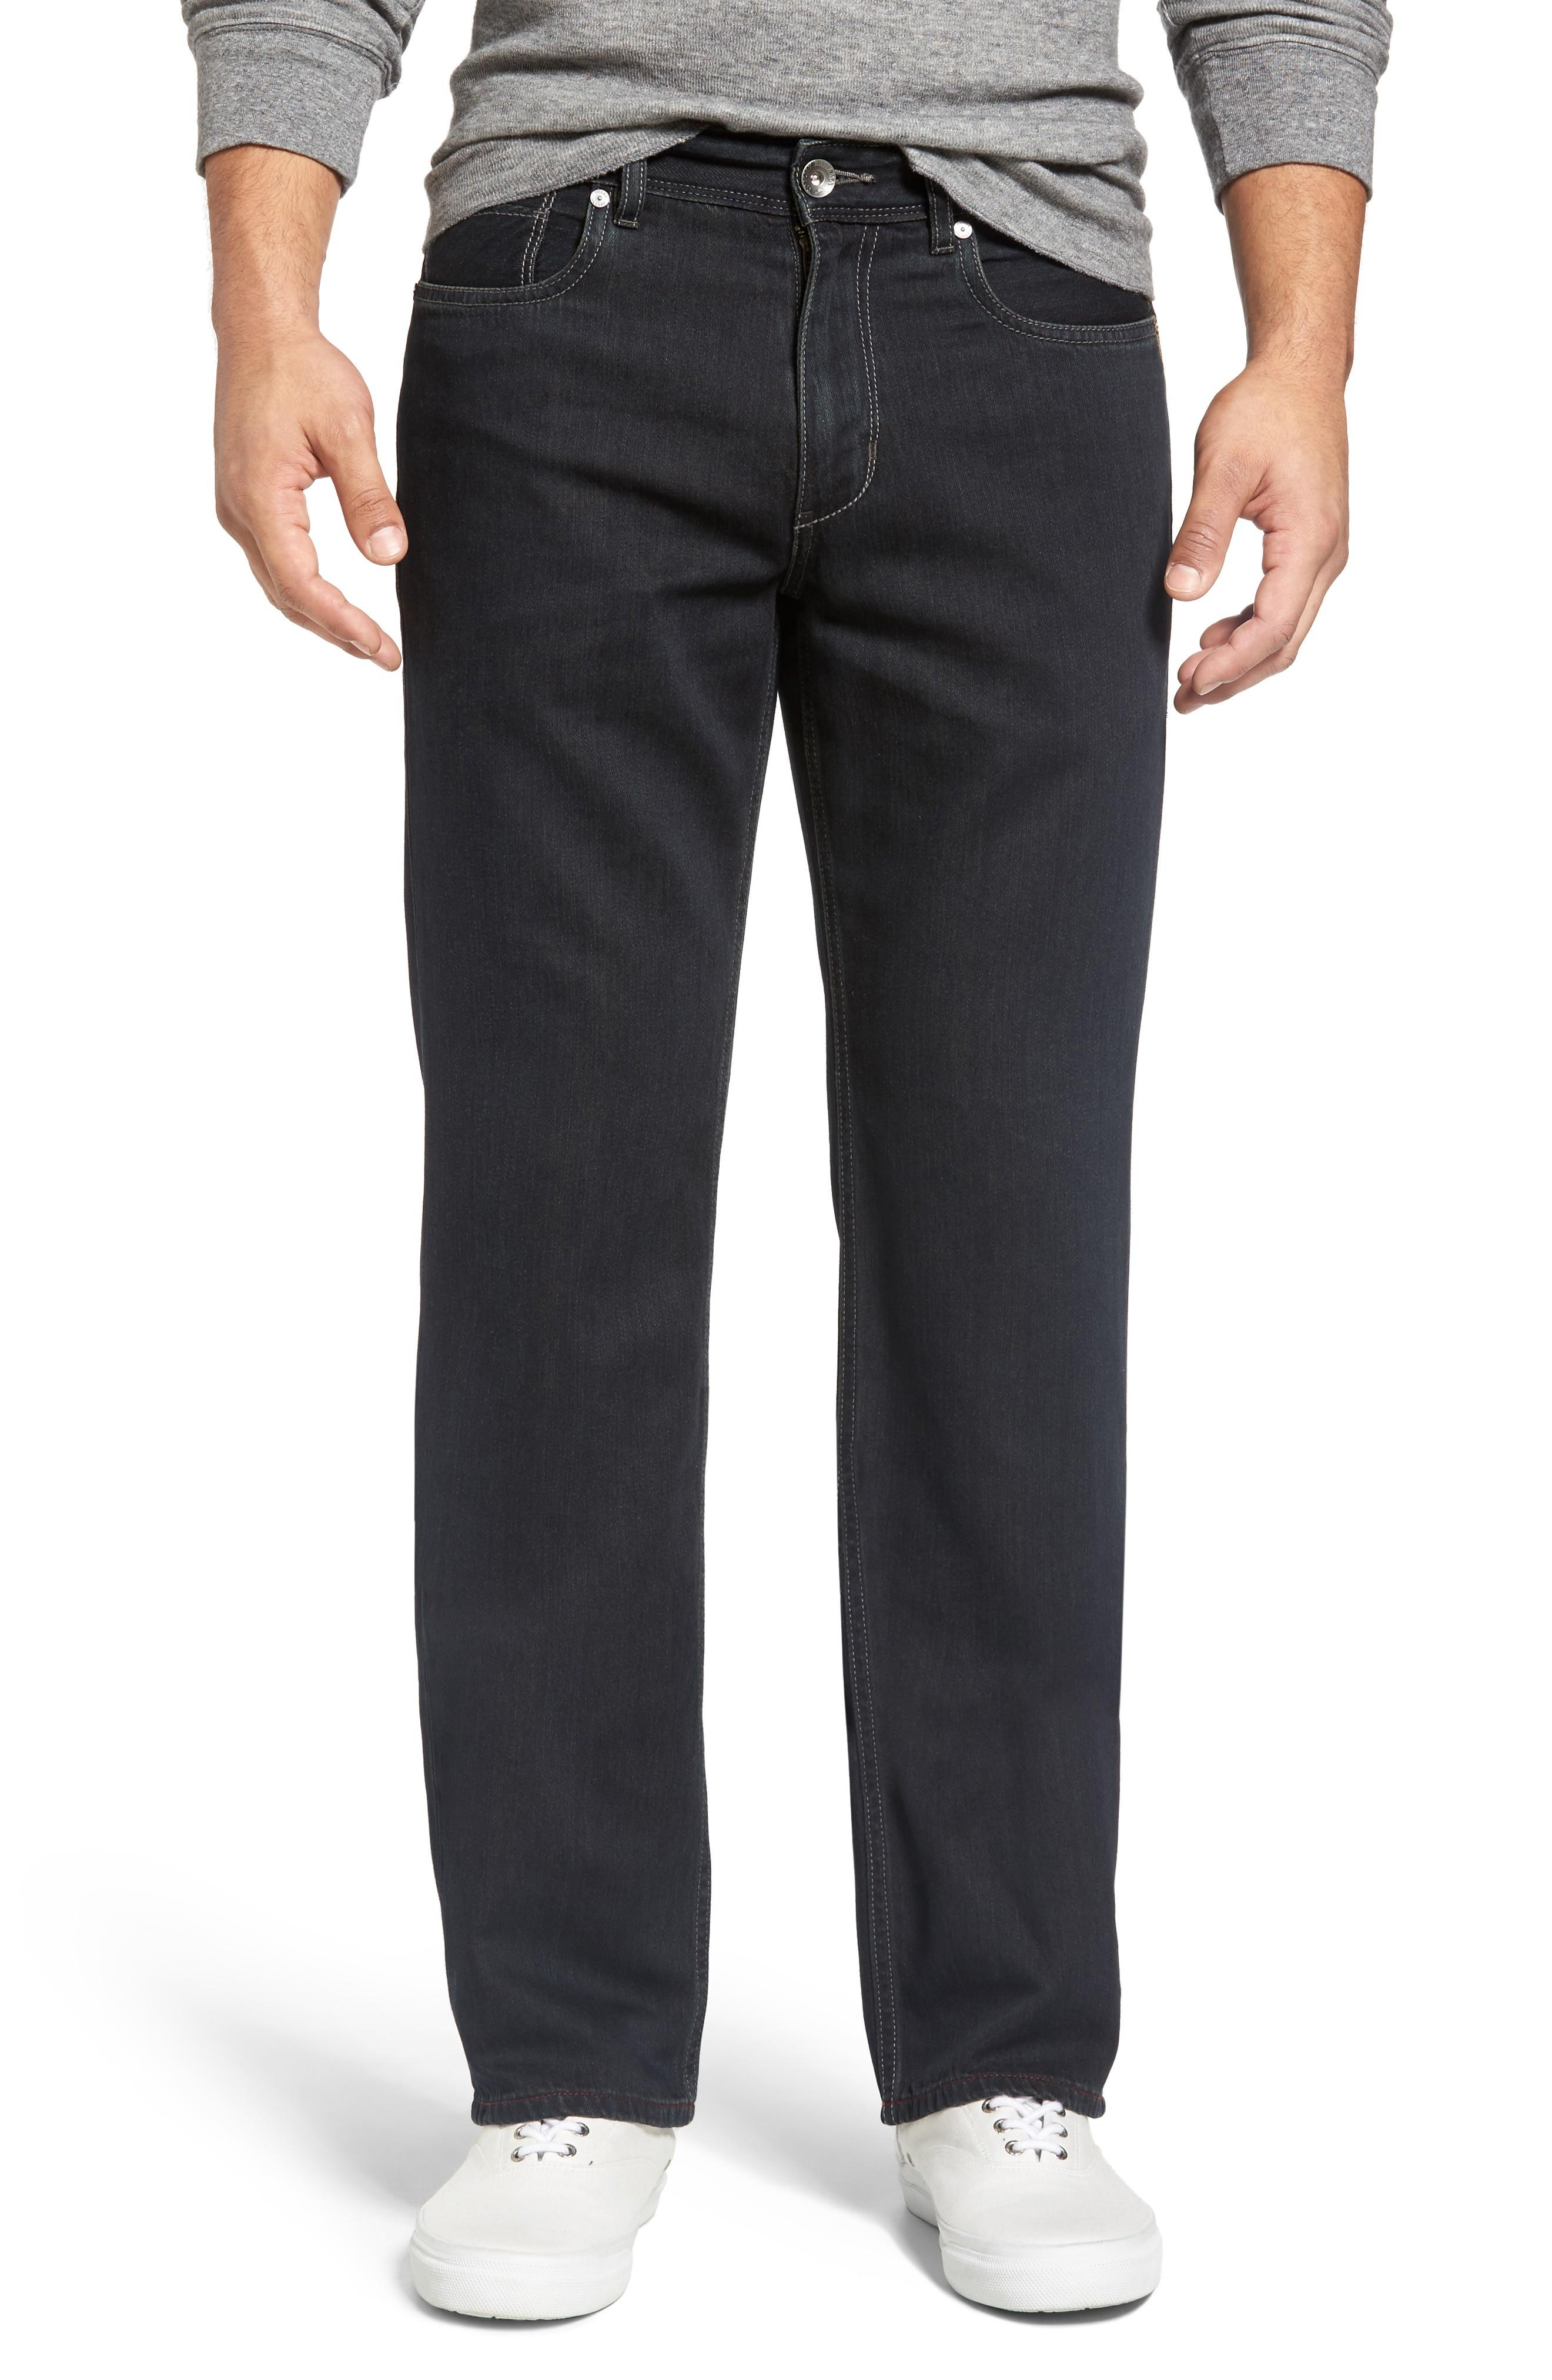 ce96ff5e9 Tommy Bahama Cayman Island Relaxed Fit Straight Leg Jeans In Black Overdye